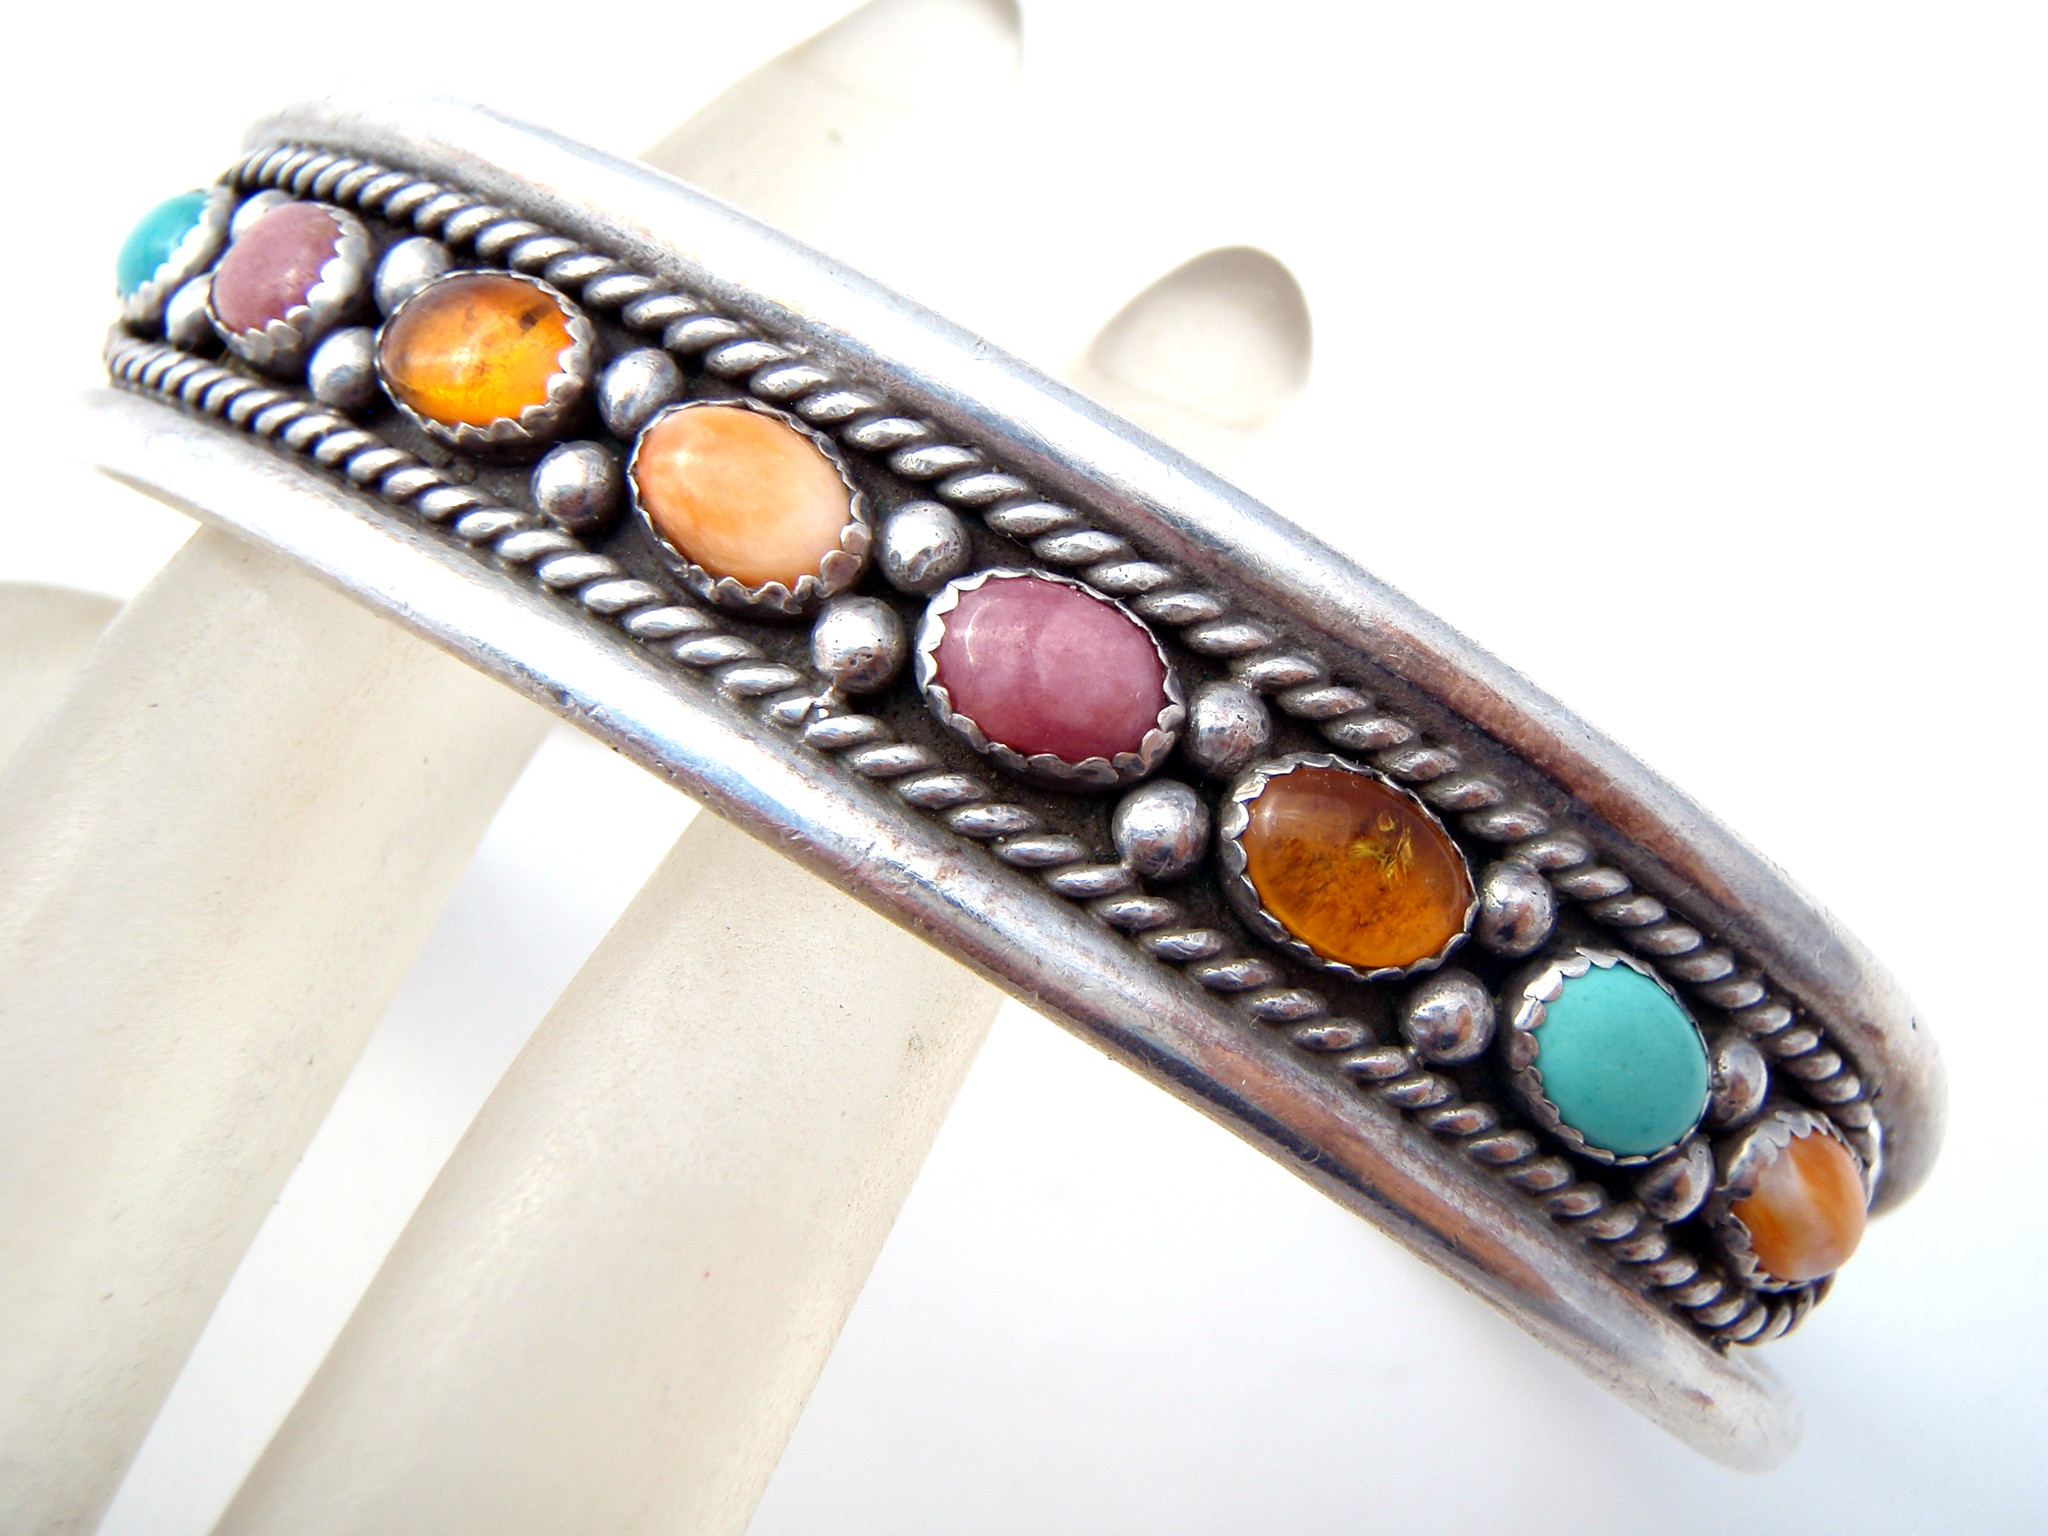 Carolyn-Pollack-Sterling-Silver-Gemstone-Cuff-Bracelet-the-jewelry-lady_s-store_7